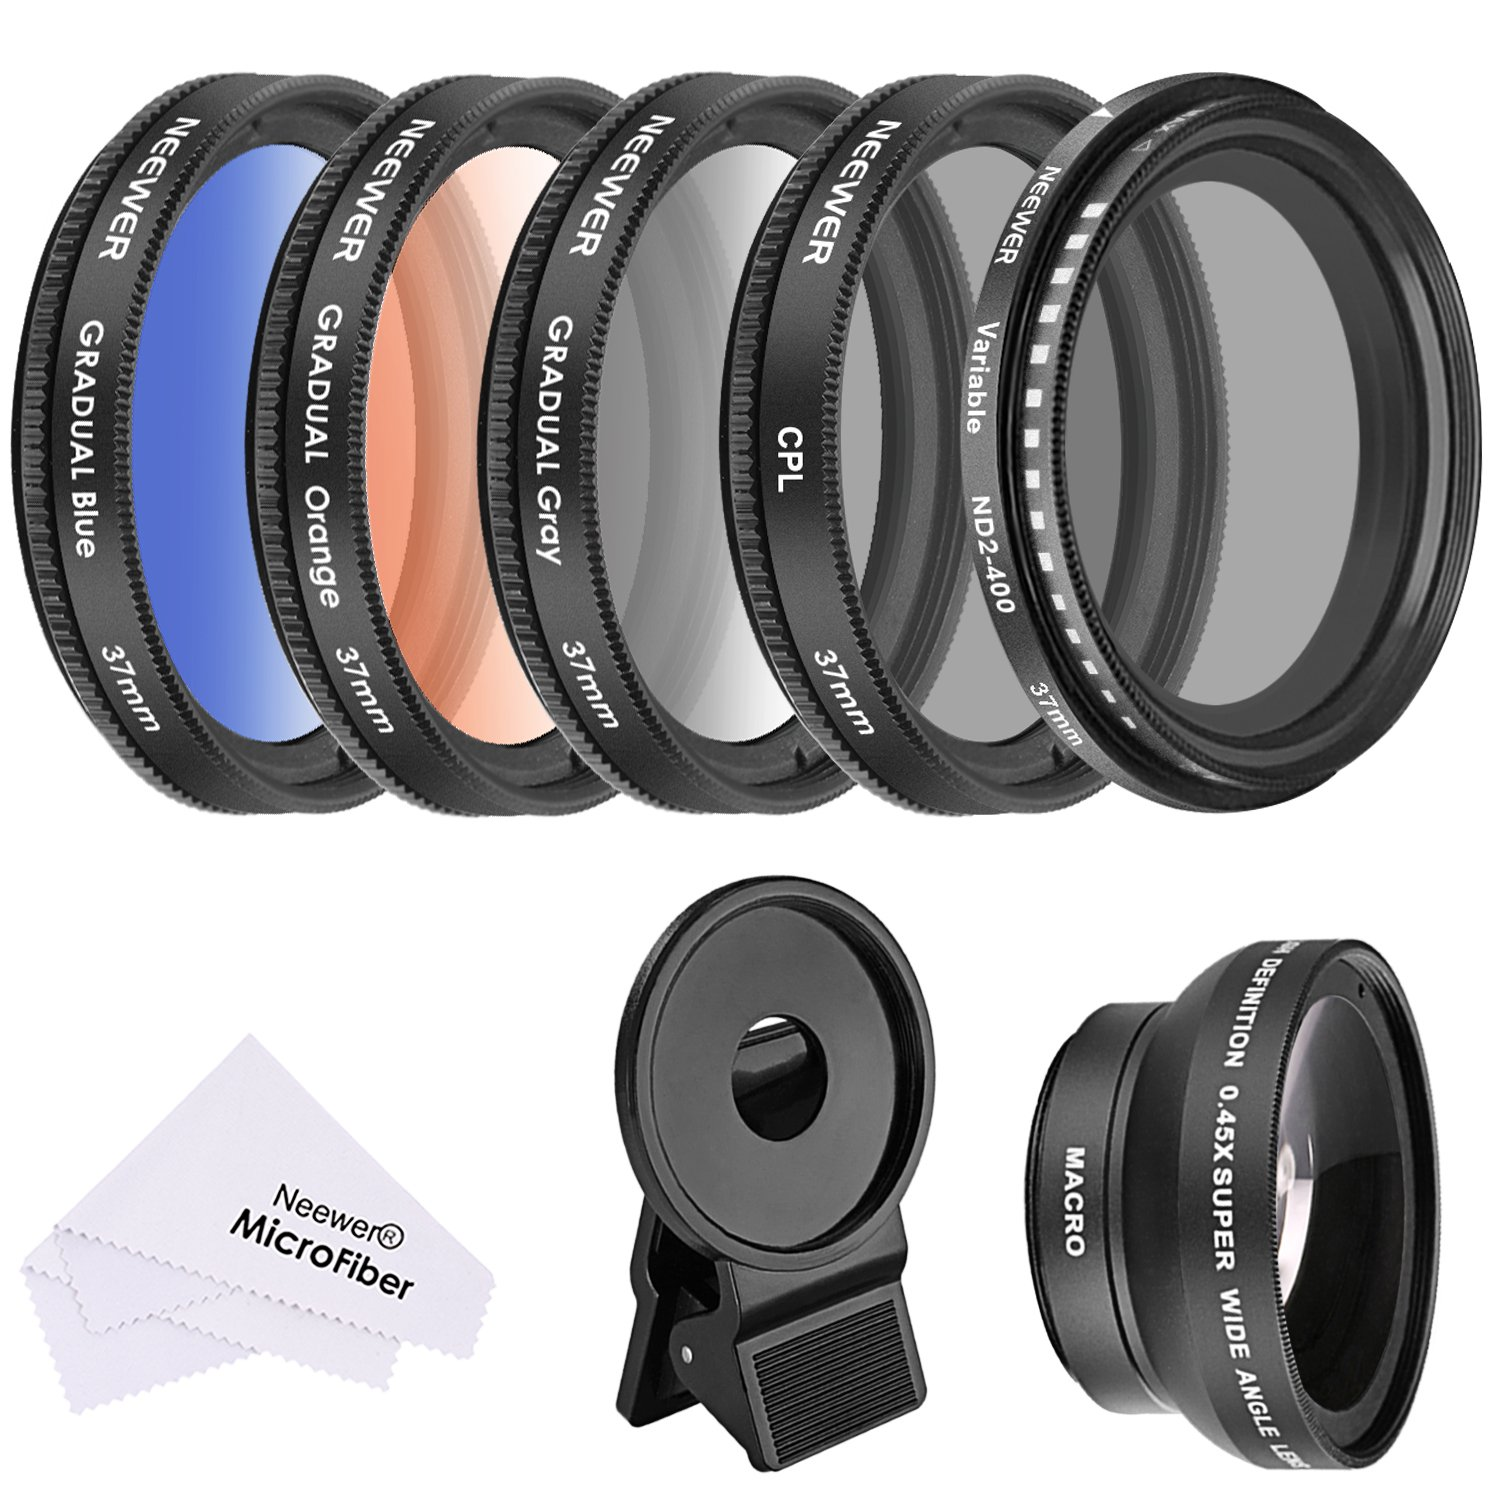 Neewer 37 MM Cell Phone Lens Accessory Kit, Includes 0.45X Wide Angle Lens,Lens Clip, Graduated Color Filters (Blue Orange Grey), Circular Polarizer CPL Filter, Neutral Density ND2-400 Filter 10088674